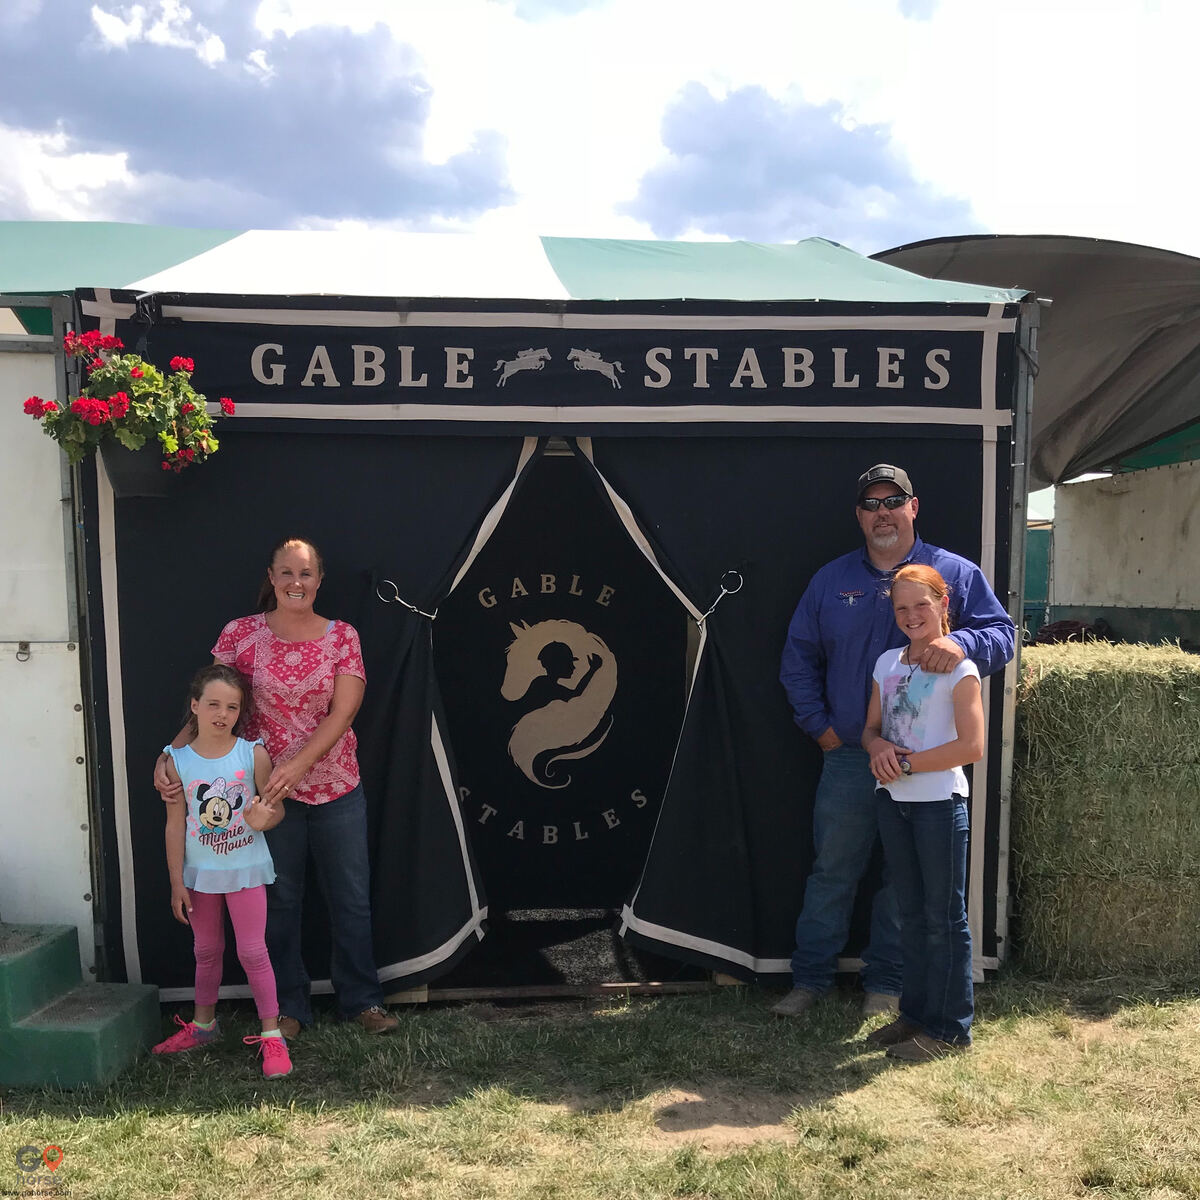 Gable Stables Horse stables in Caldwell ID 1